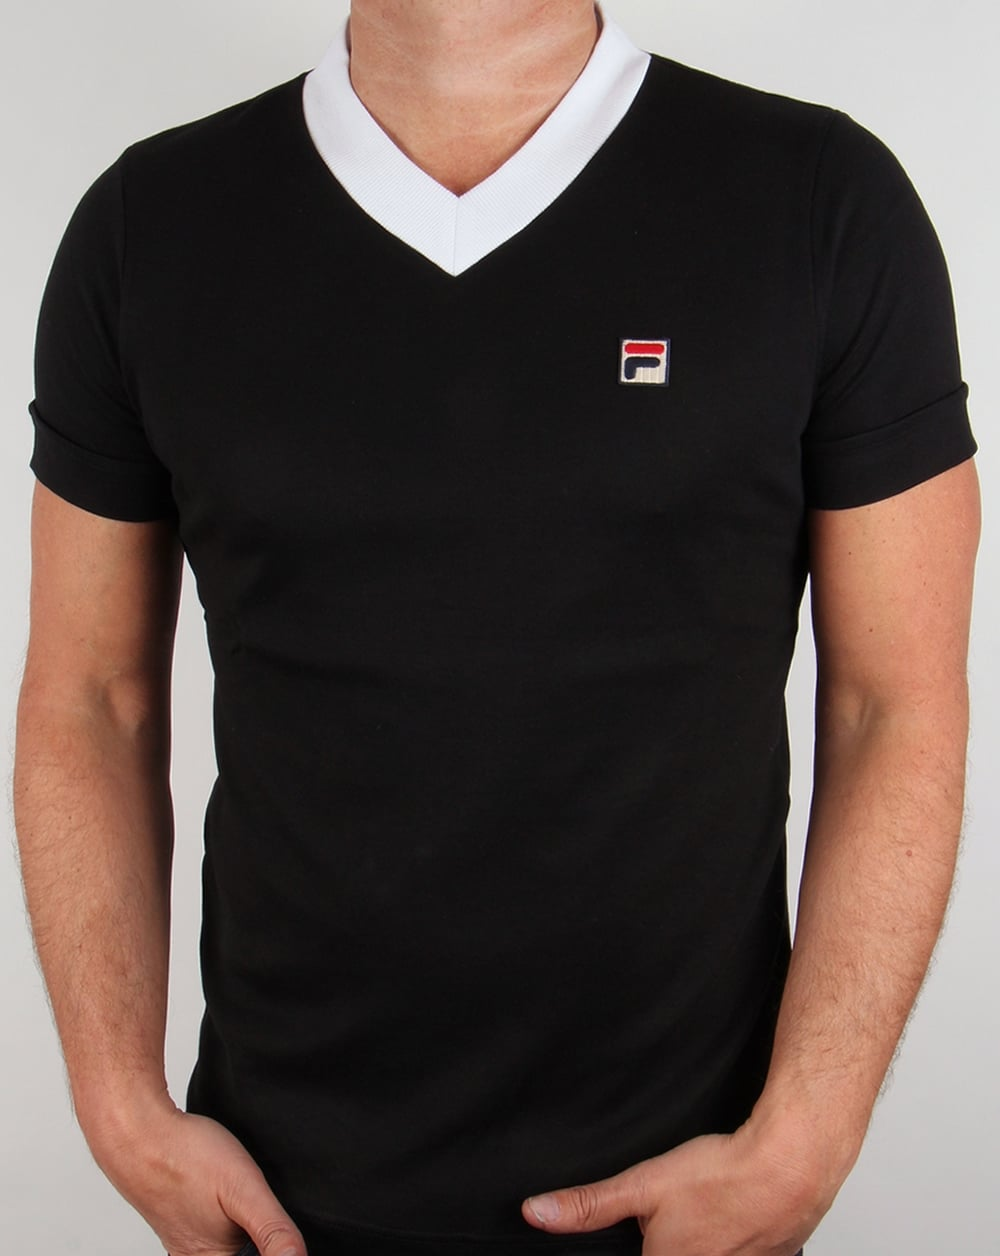 Black t shirts v neck - Fila Vintage Carrack V Neck T Shirt Black White